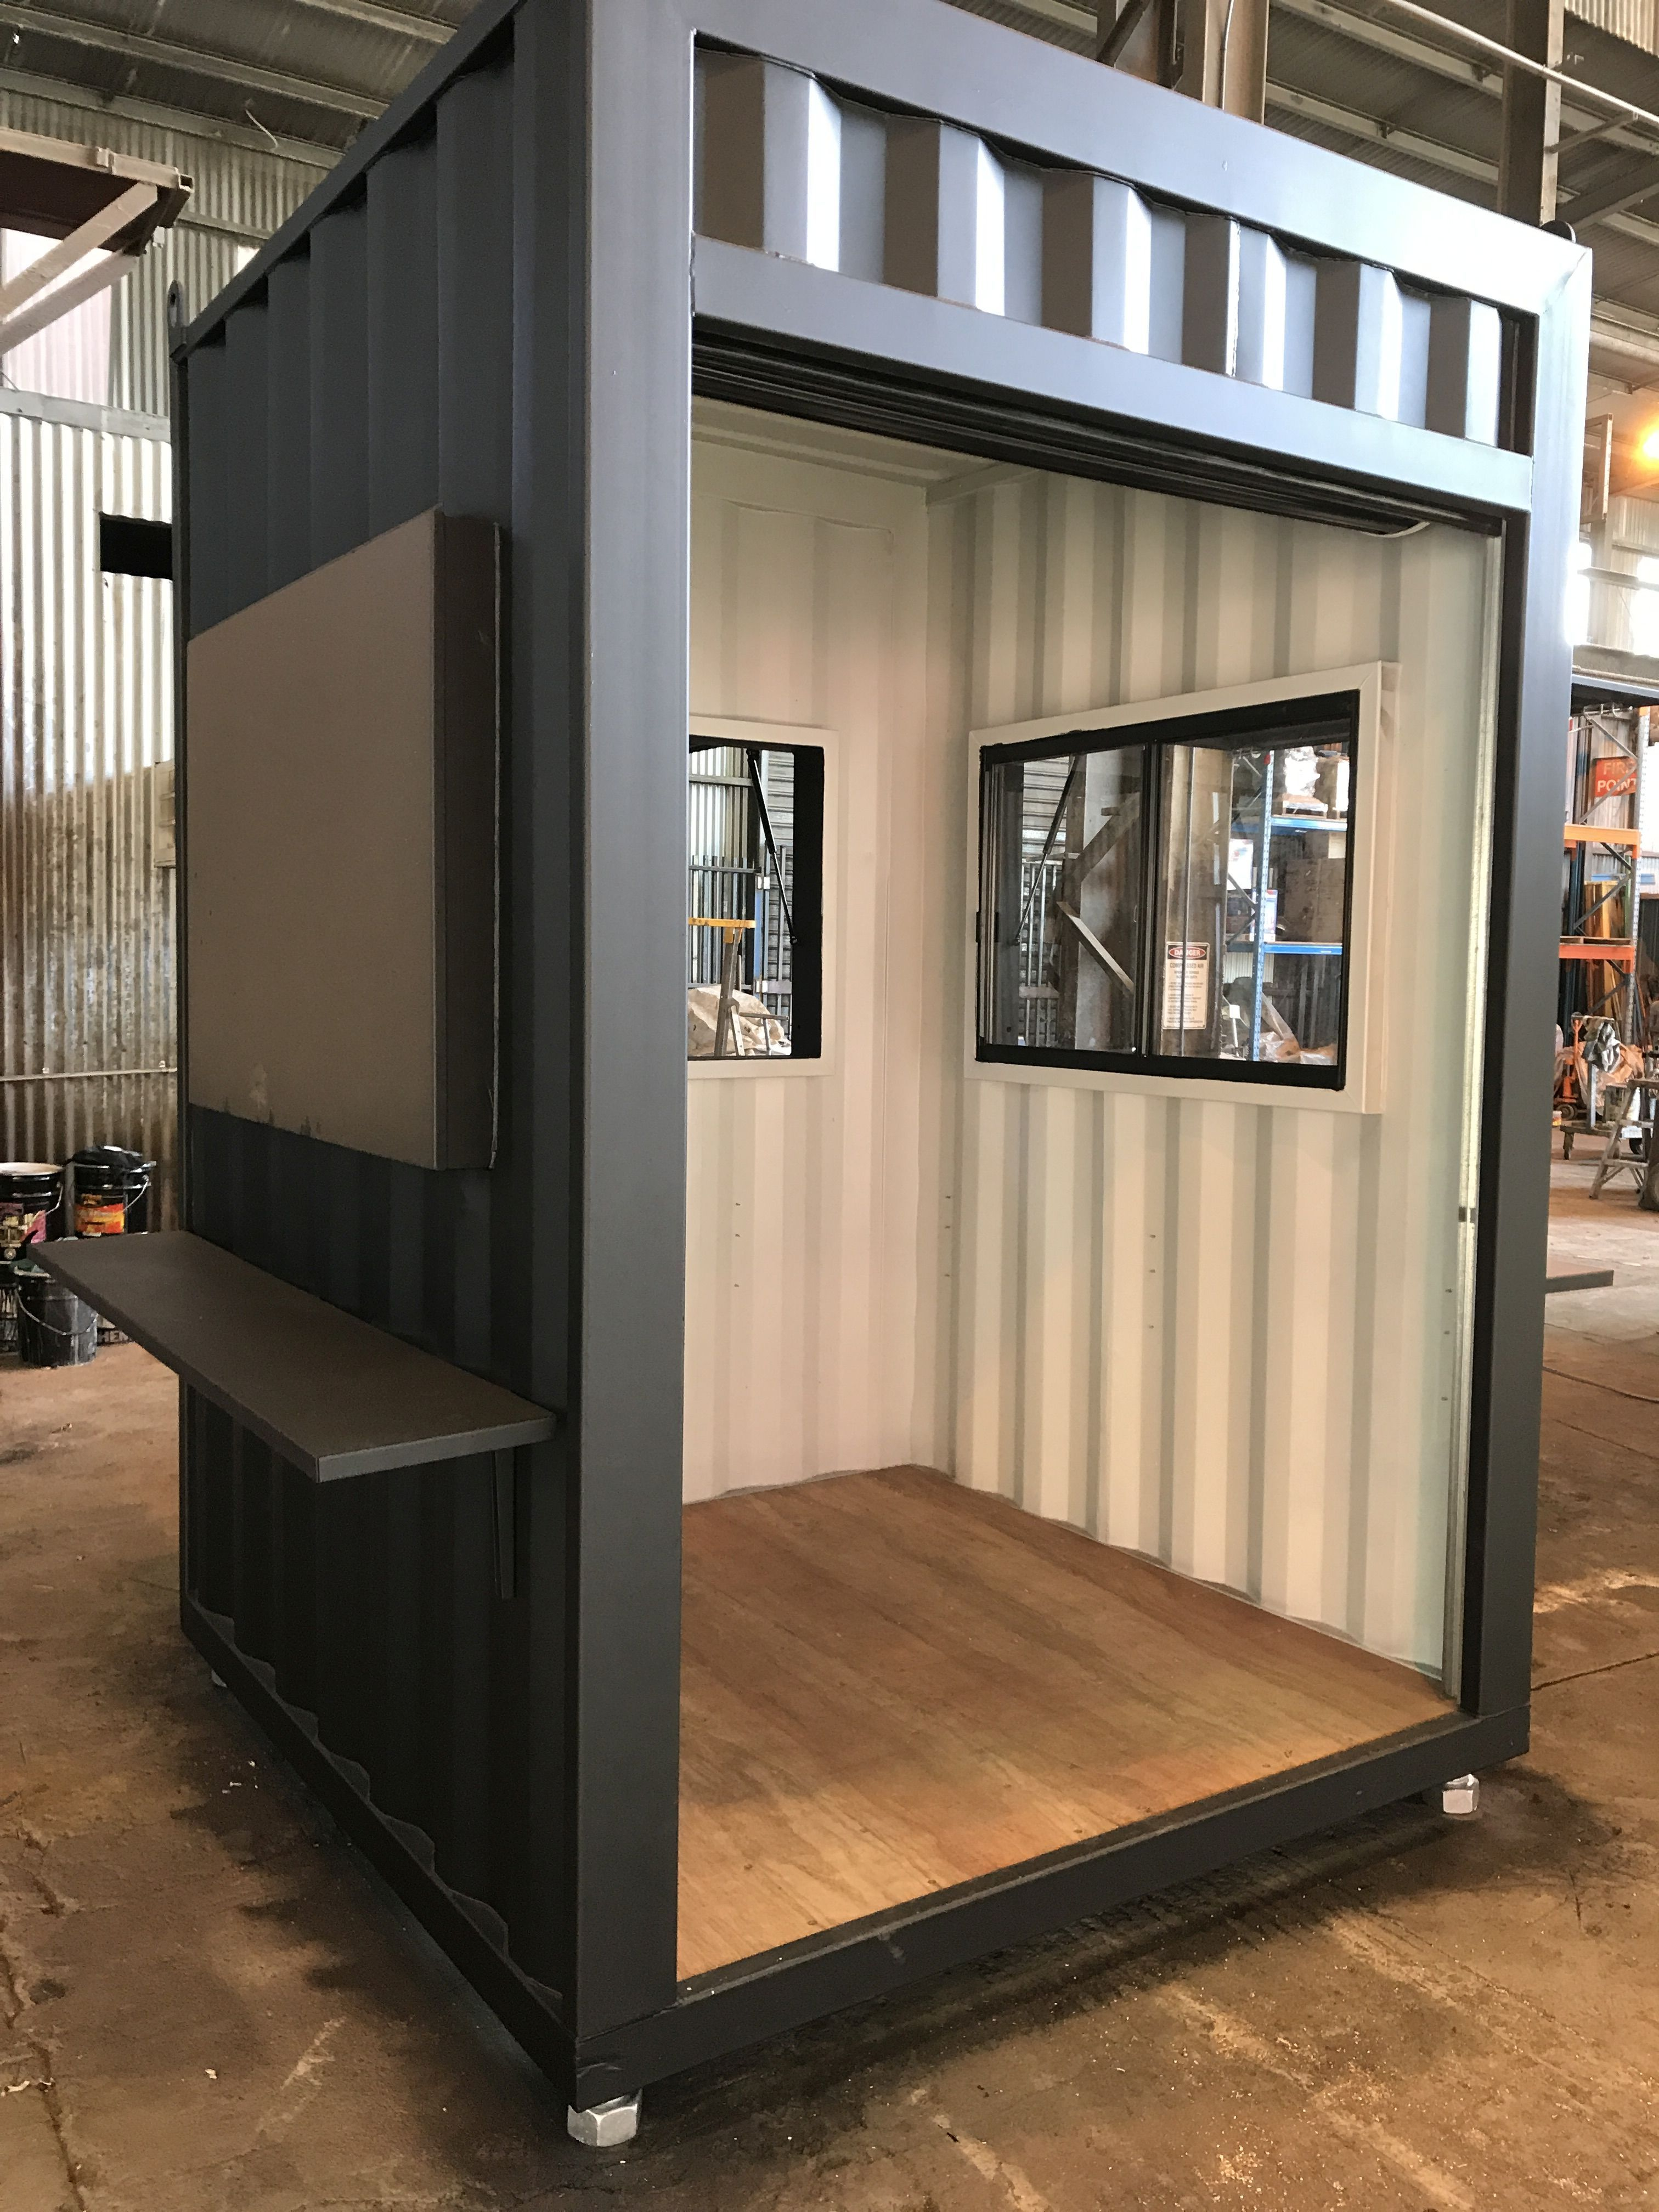 Shipping Containers for Sale in Melbourne Rumah